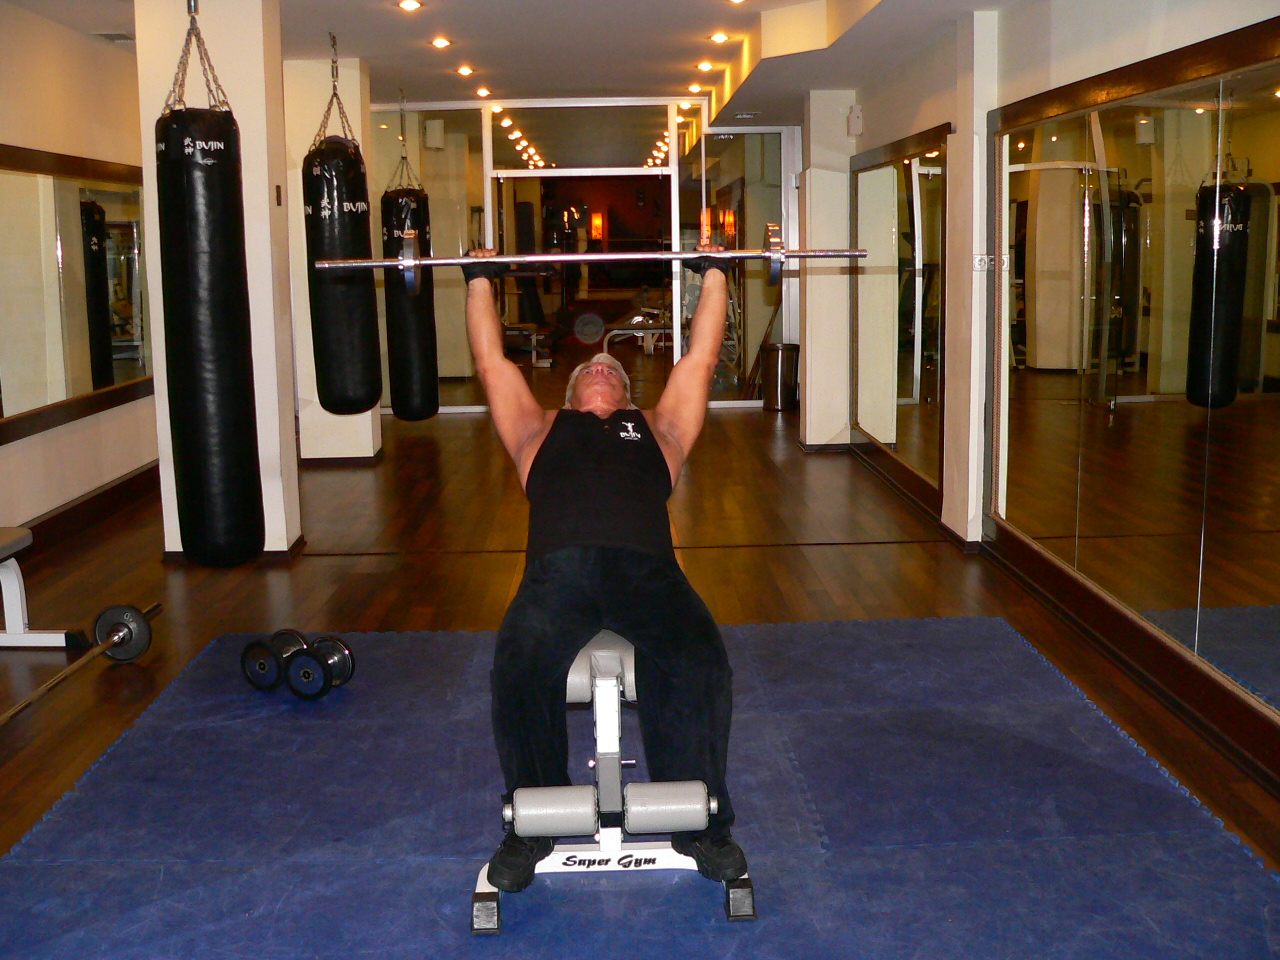 Incline Bench Barbell Press